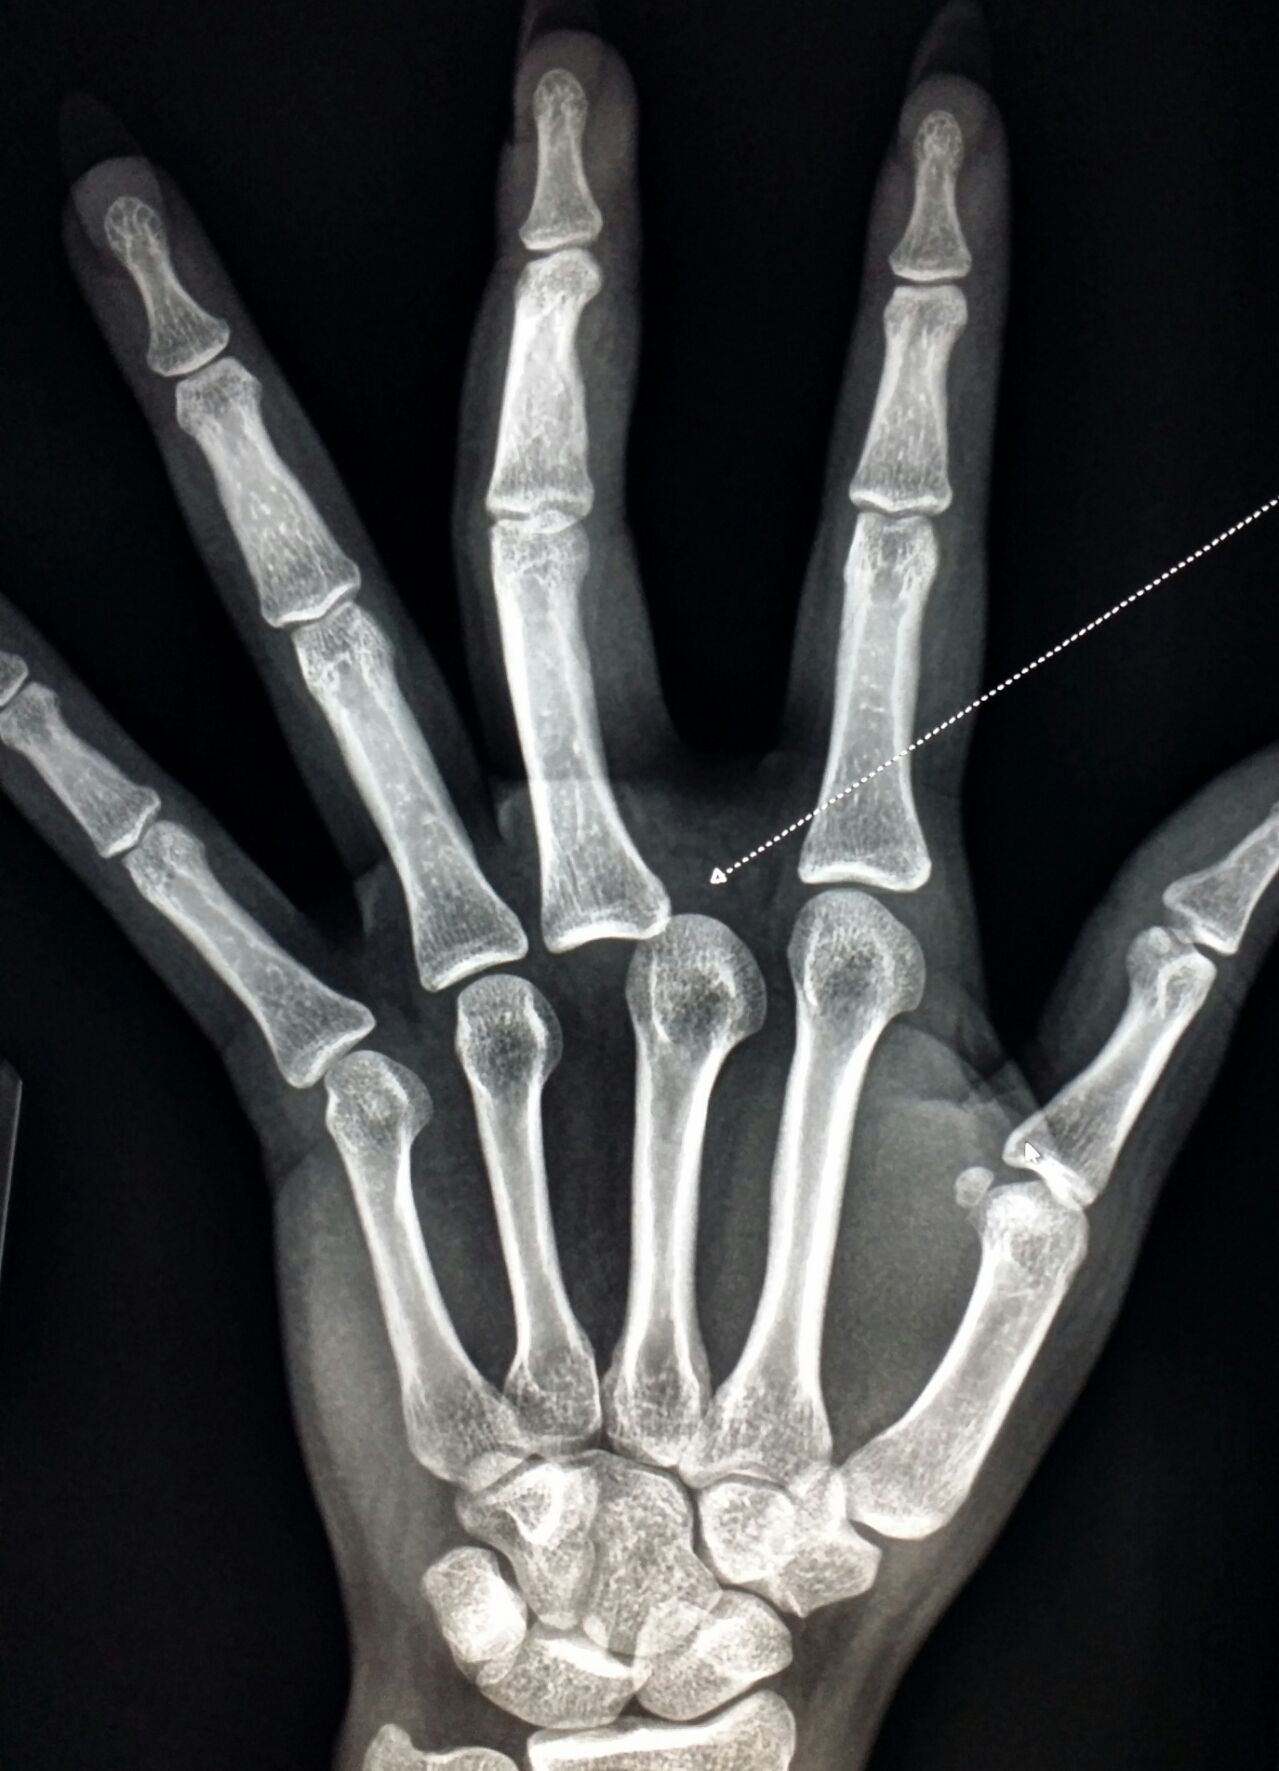 Xray of #hand shows a #dislocated# finger. #radiology #radiologist ...